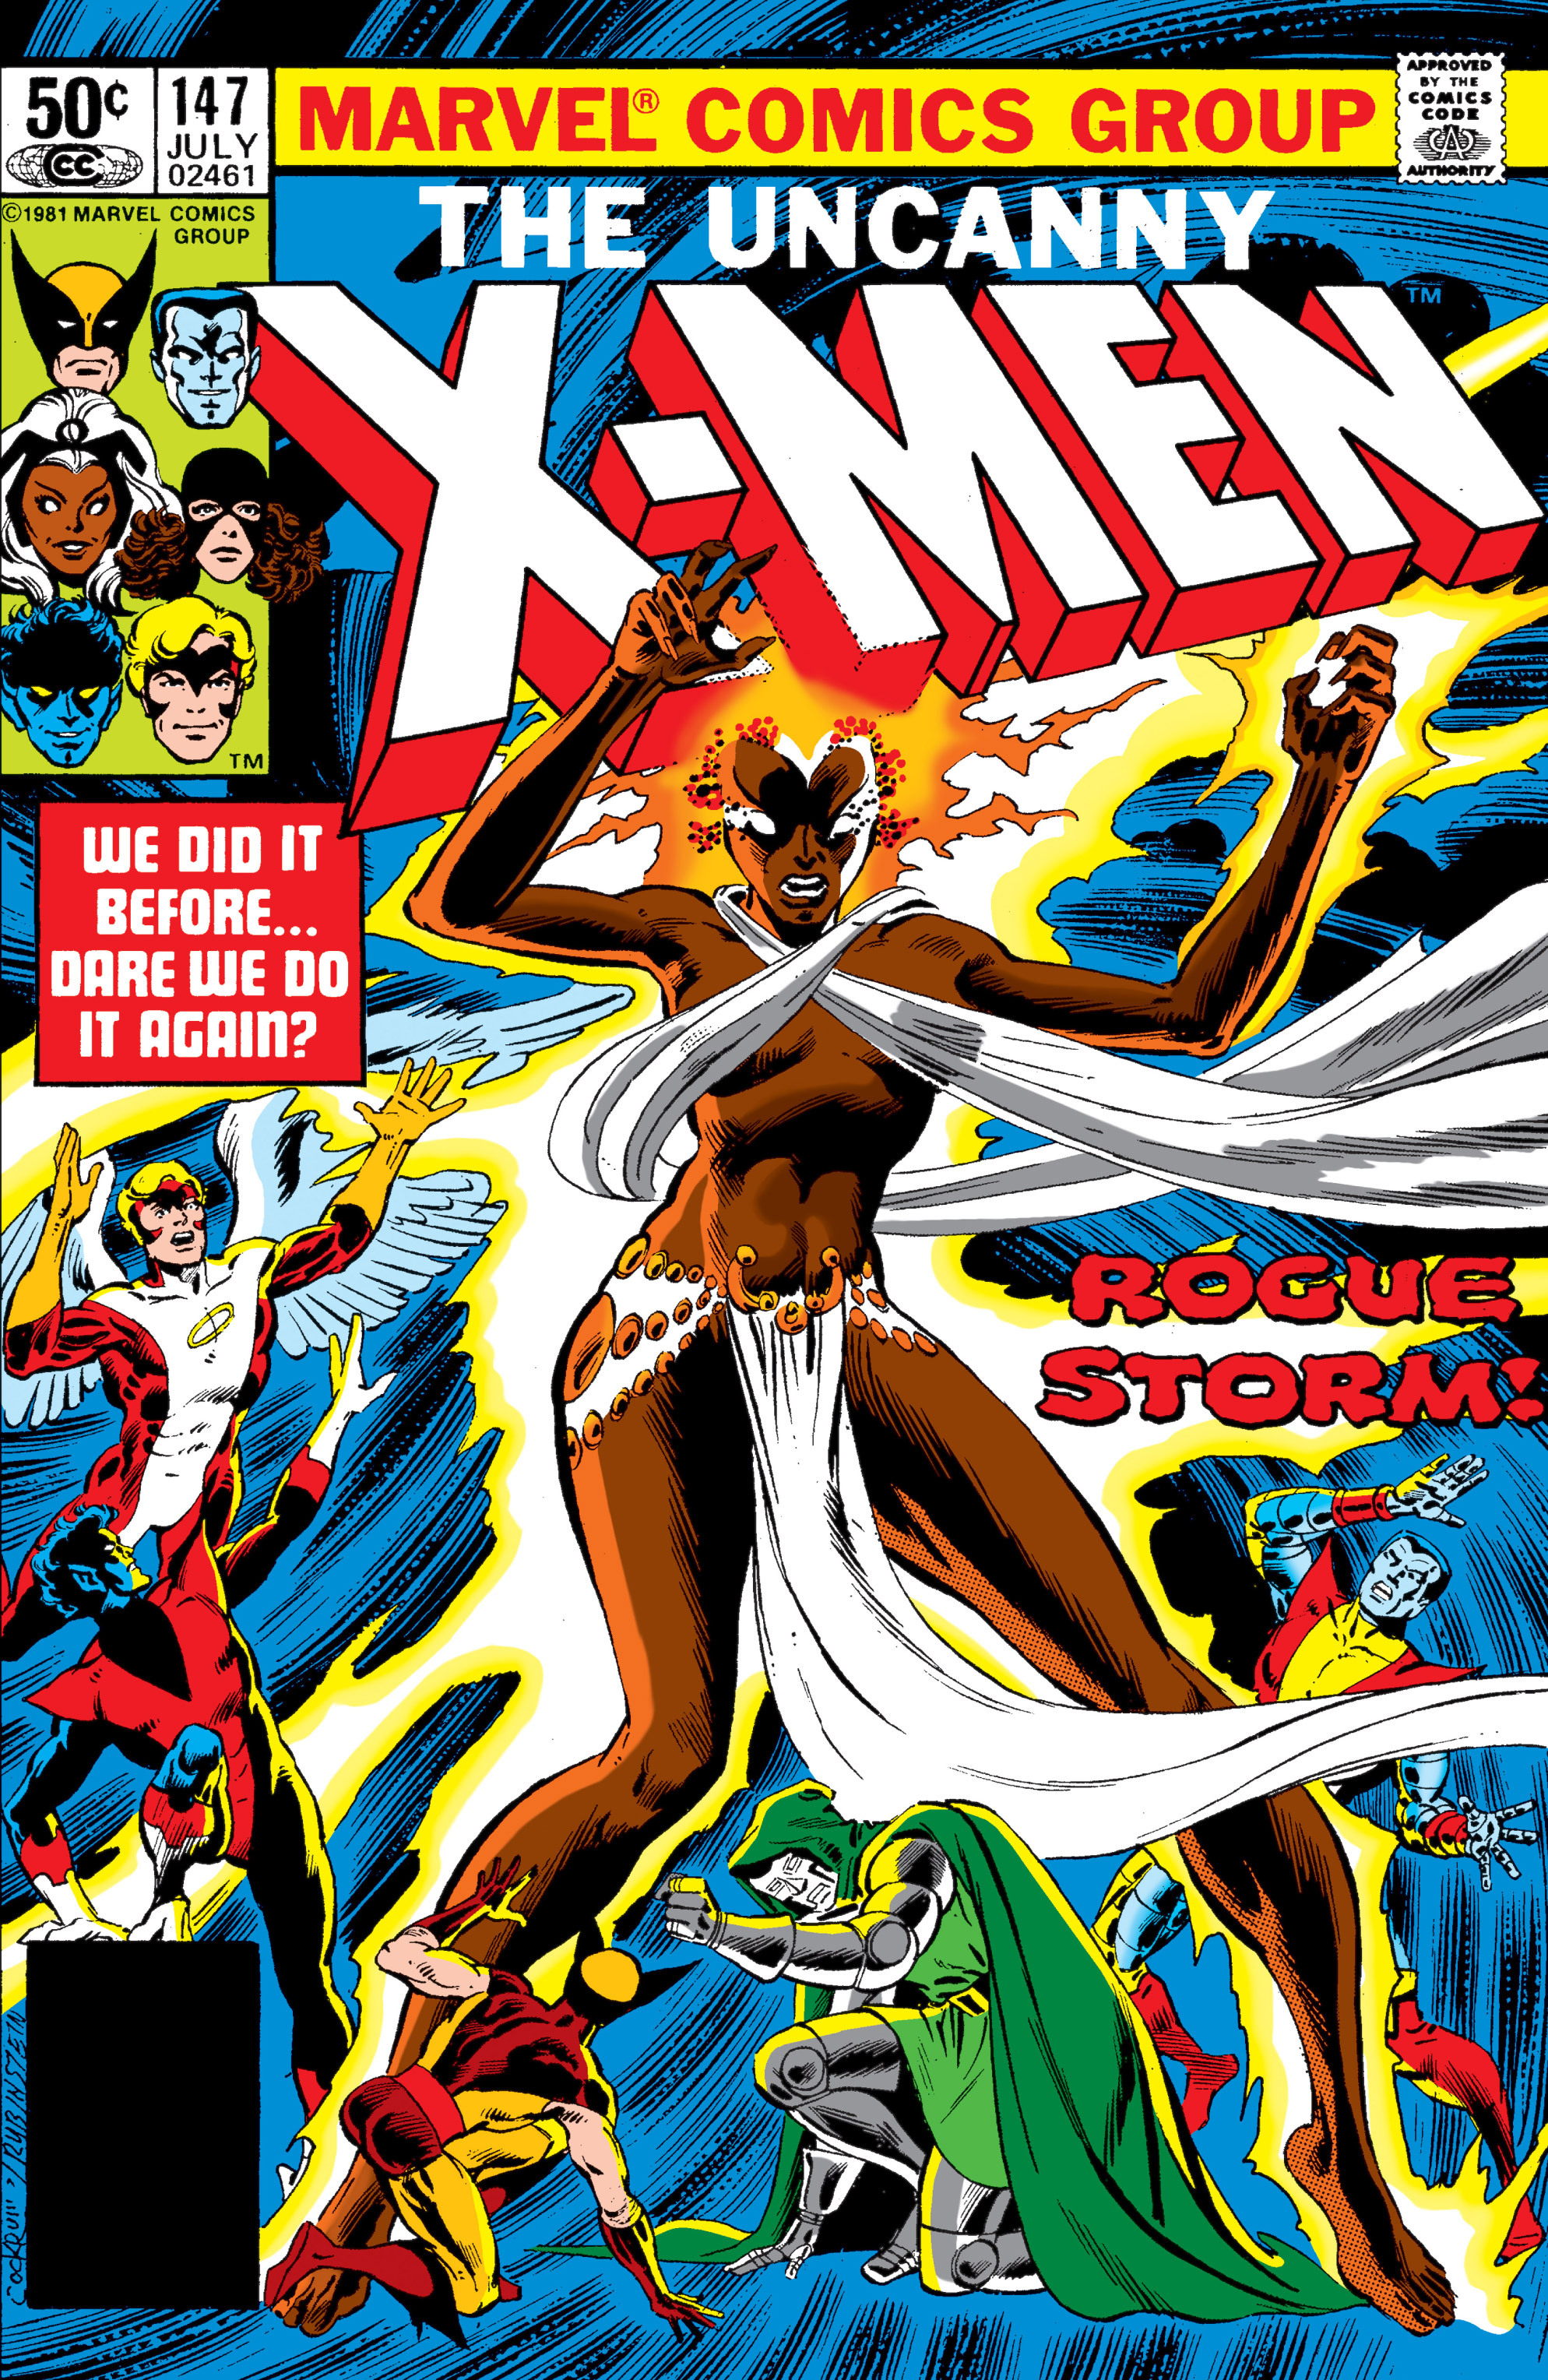 Read online Uncanny X-Men (1963) comic -  Issue #147 - 1